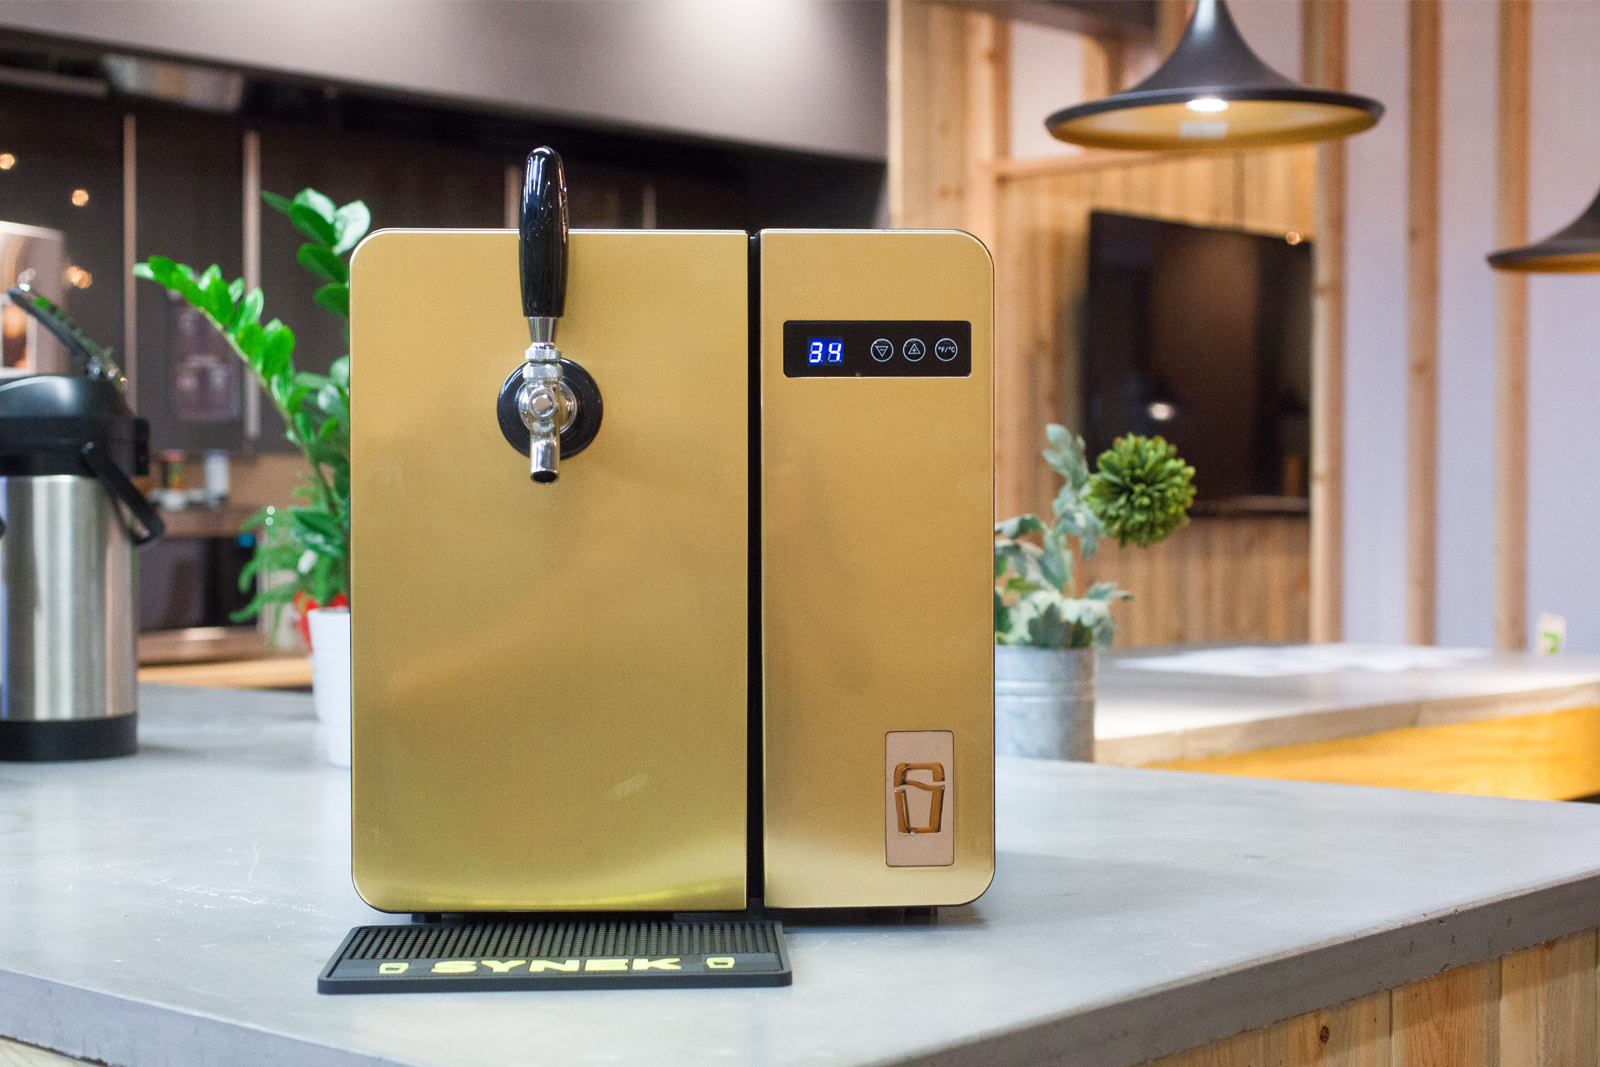 Synek Counter Top Beer Dispenser Release Date, Price and Specs - CNET